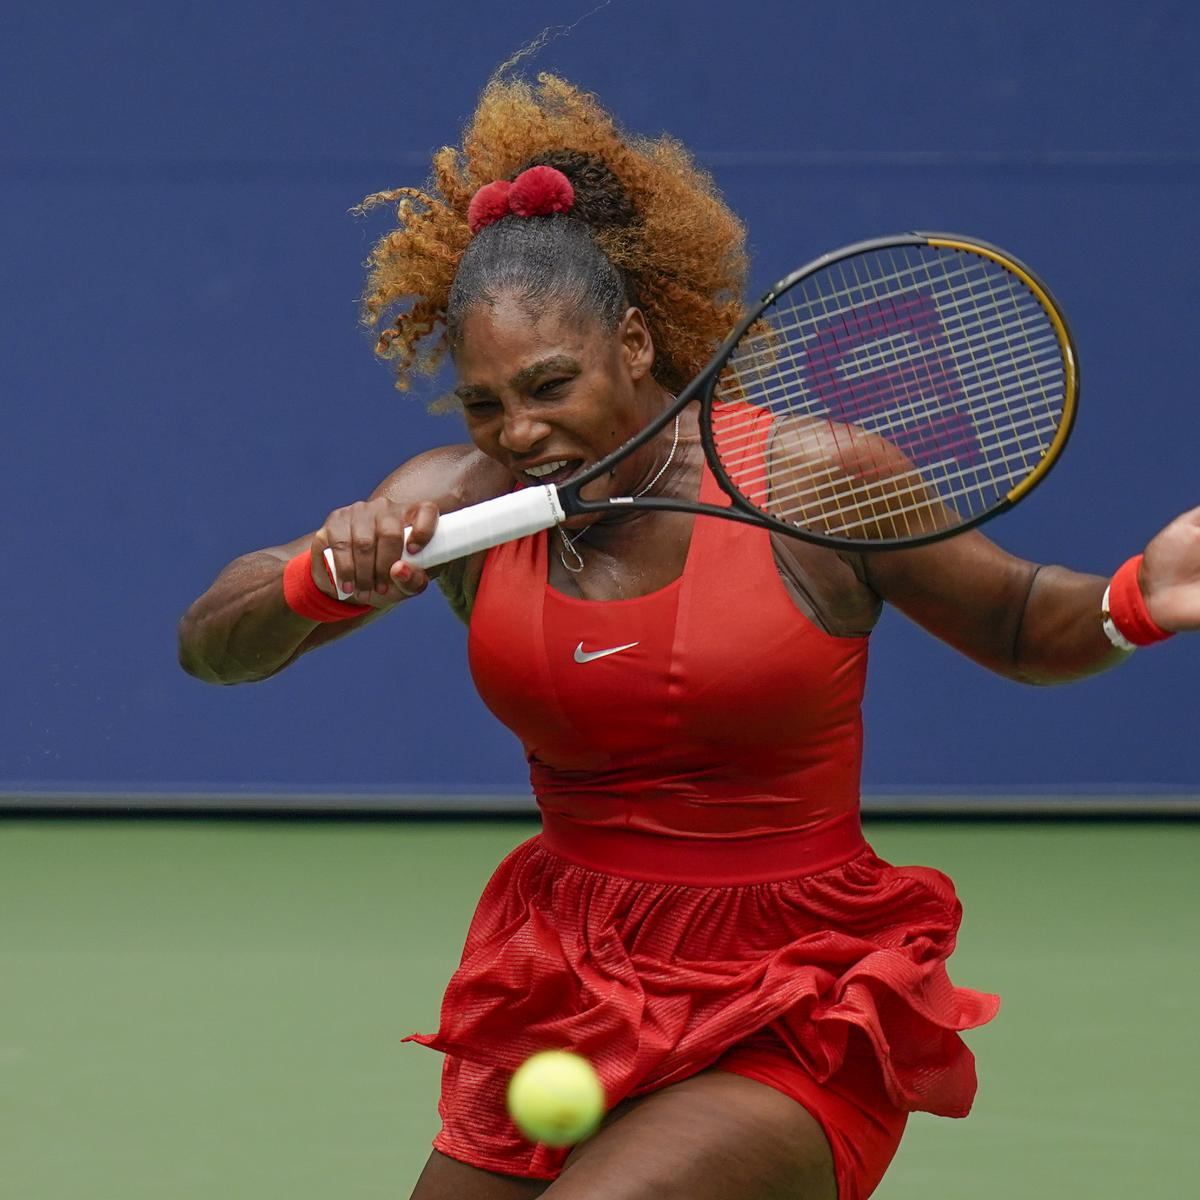 US Open Tennis 2020: TV Schedule, Live Stream for Women's Semifinals